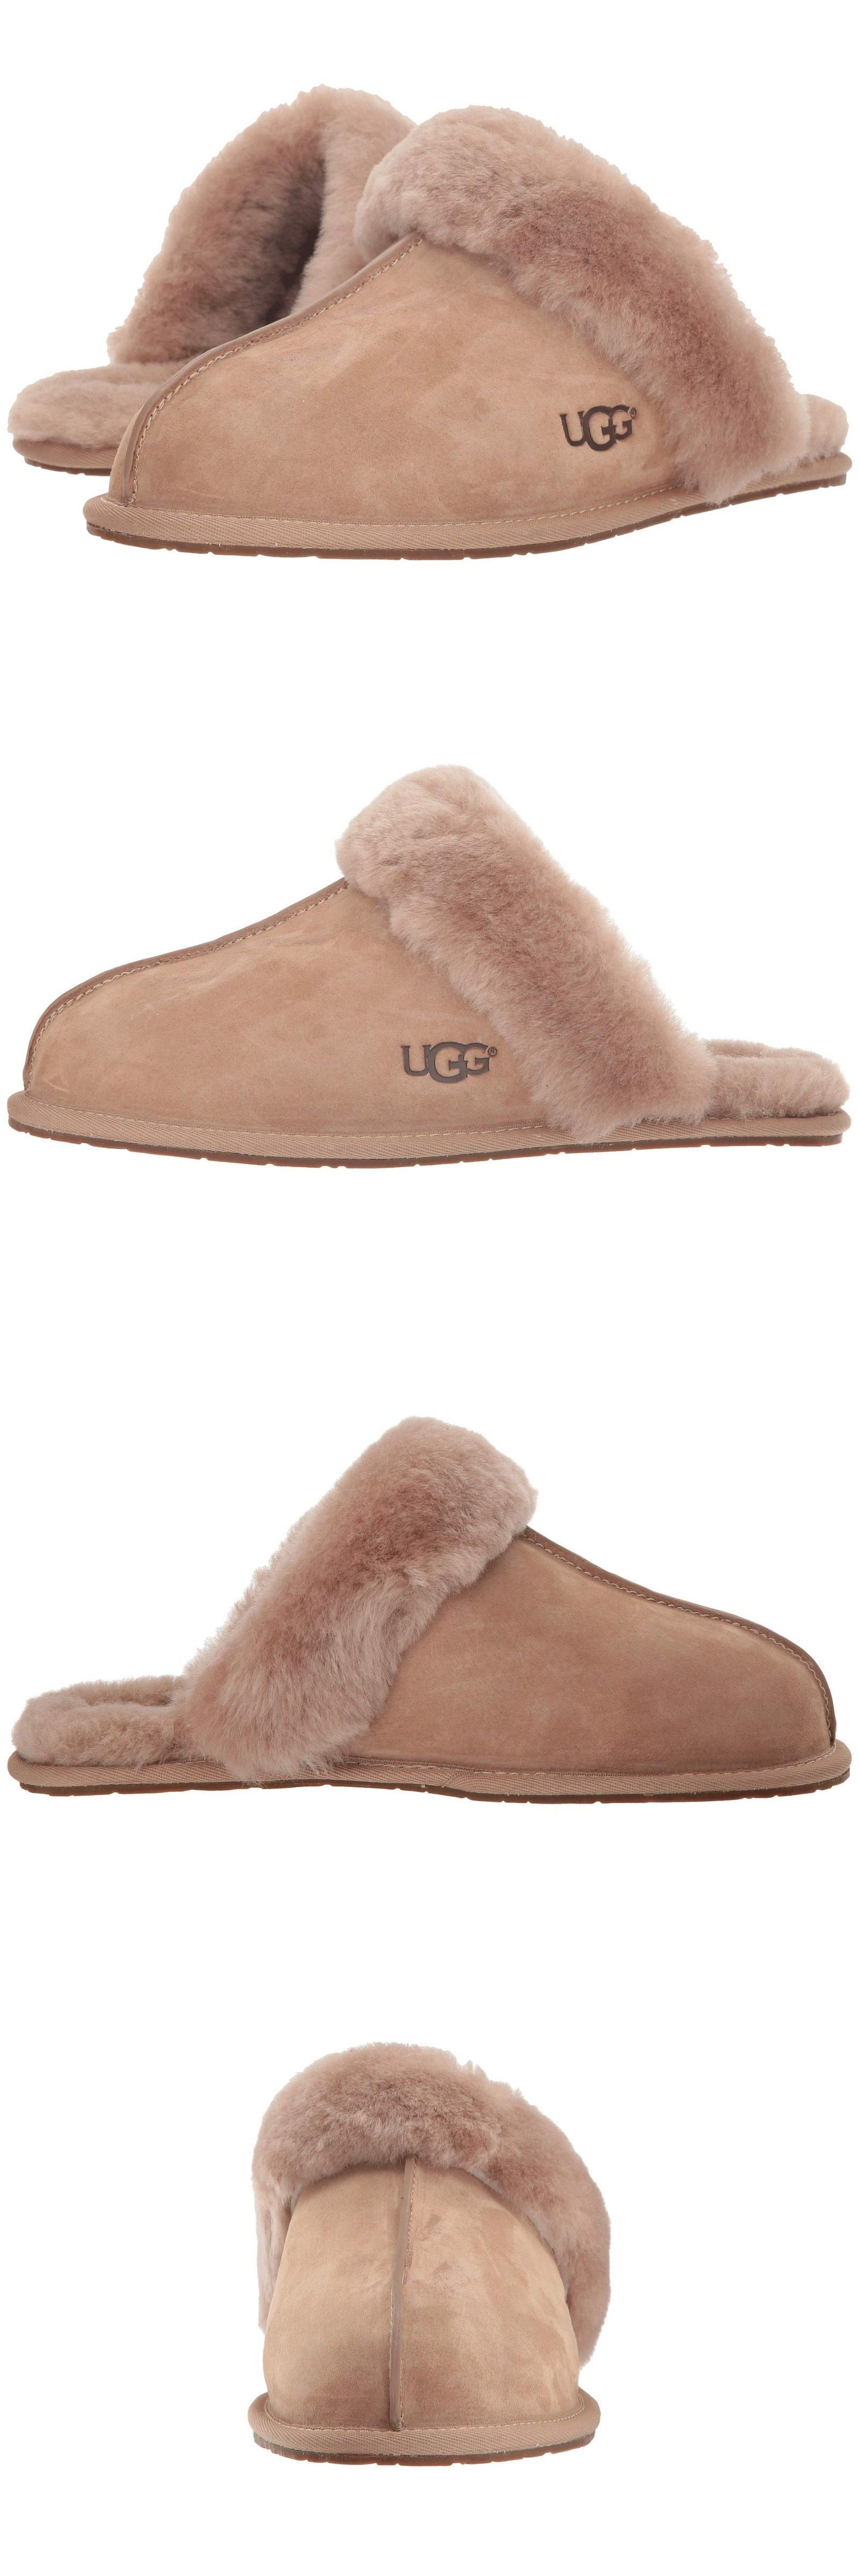 82f0b6be151 Slippers 11632  Women Ugg Scuffette Ii Slipper 5661 Fawn Suede 100%  Authentic Brand New -  BUY IT NOW ONLY   75.92 on  eBay  slippers  women   scuffette ...